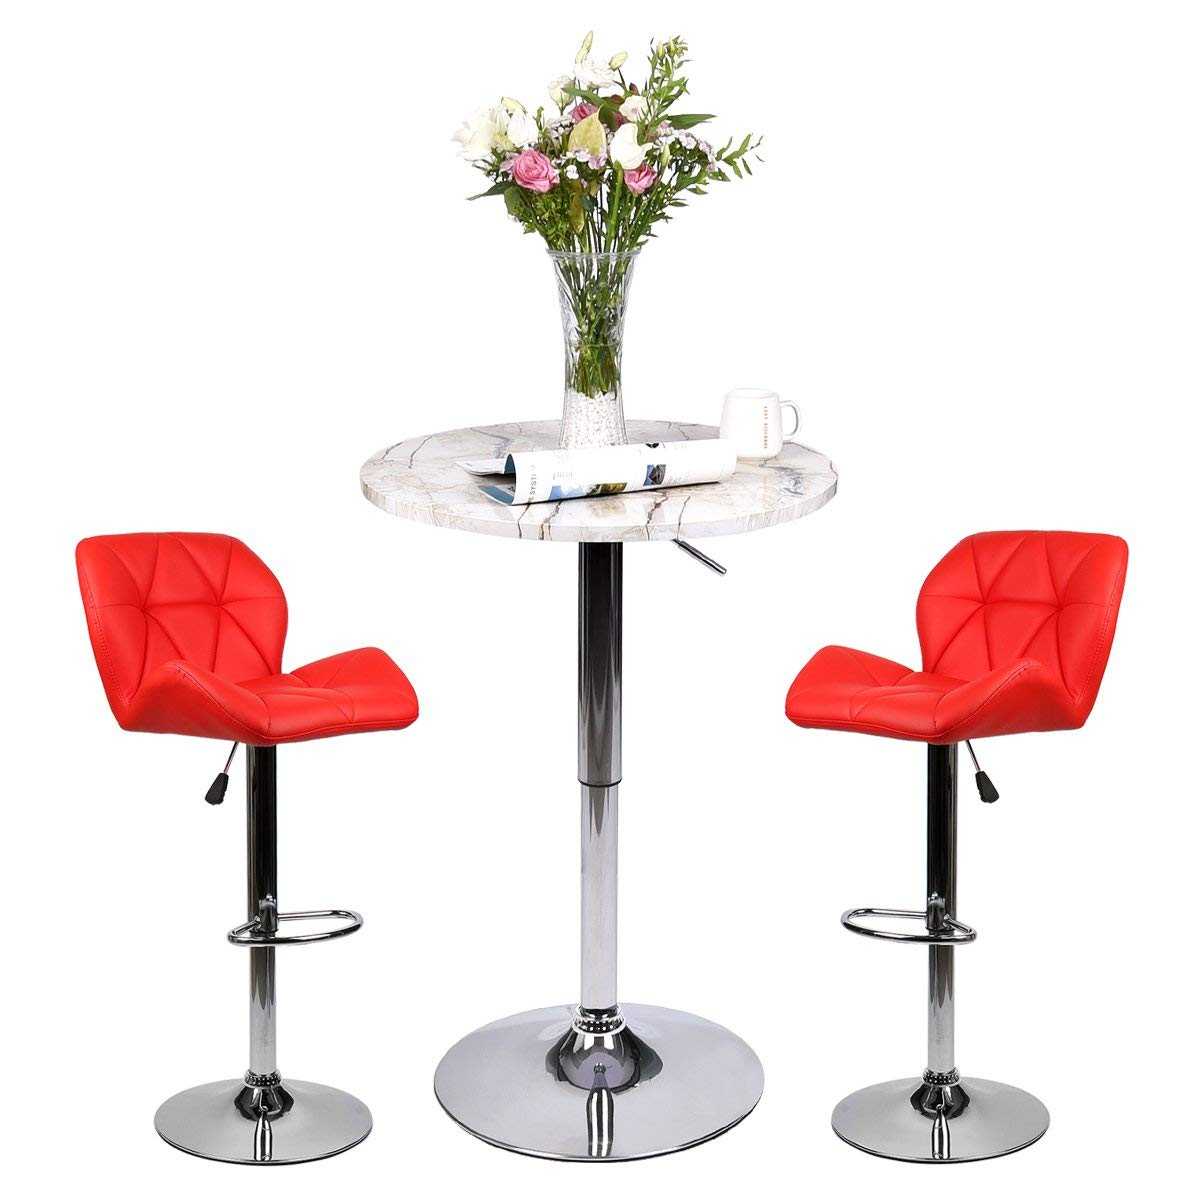 Bar Table Set of 3 – Adjustable Round Table and 2 Swivel Pub Stools for Home Kitchen Bistro, Bars Wine Cabinets (Set 8.1.1)